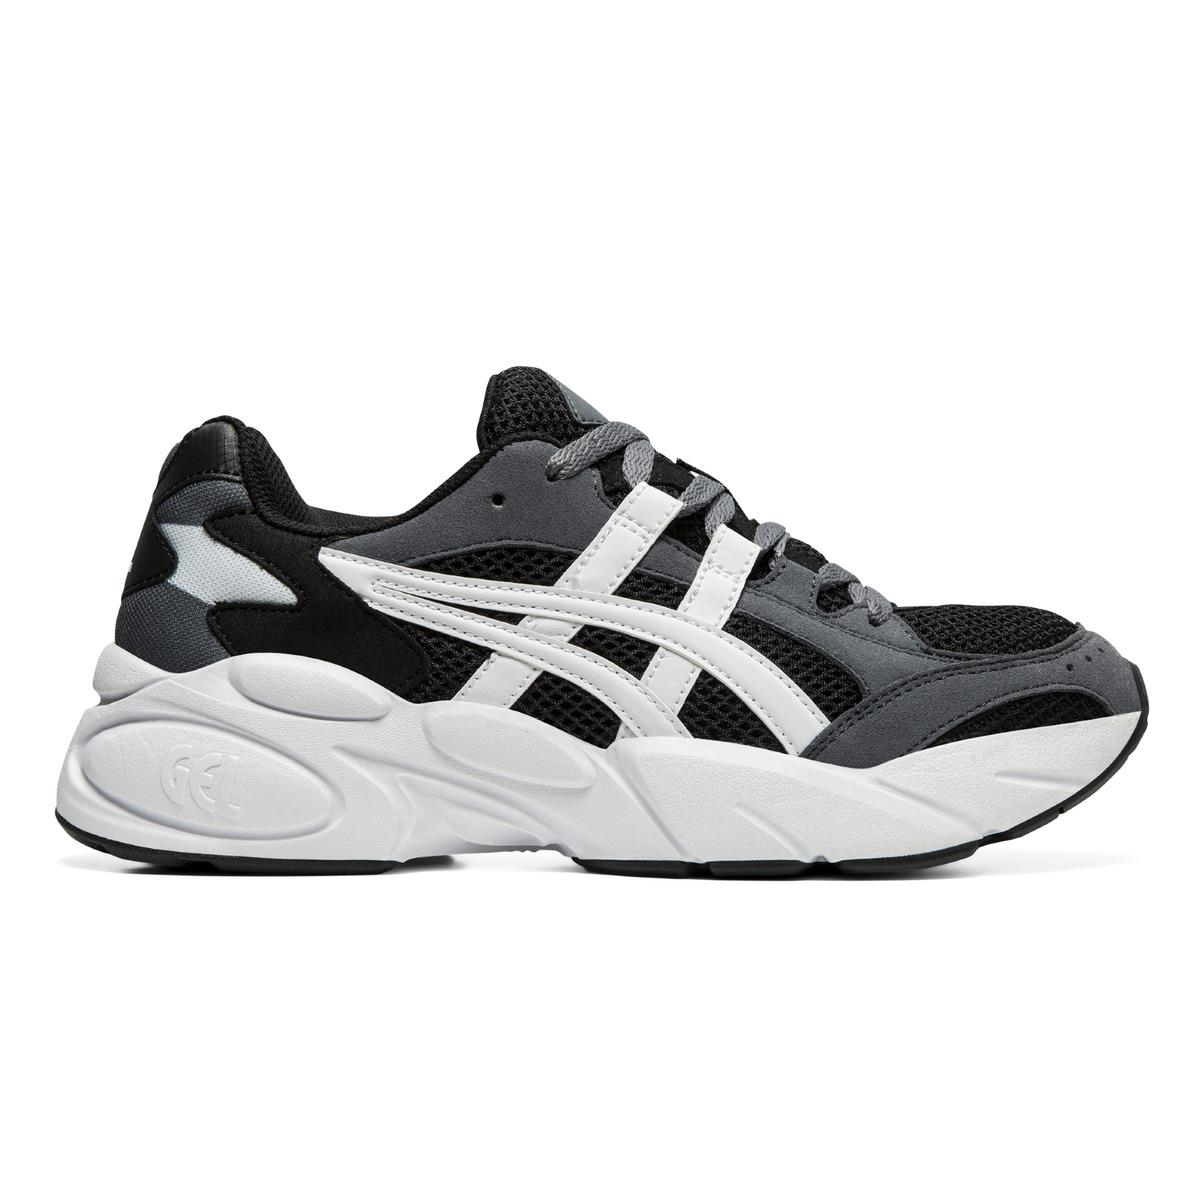 00117731119339    6  1200x1200. Zapatillas Gel-BND, de Asics